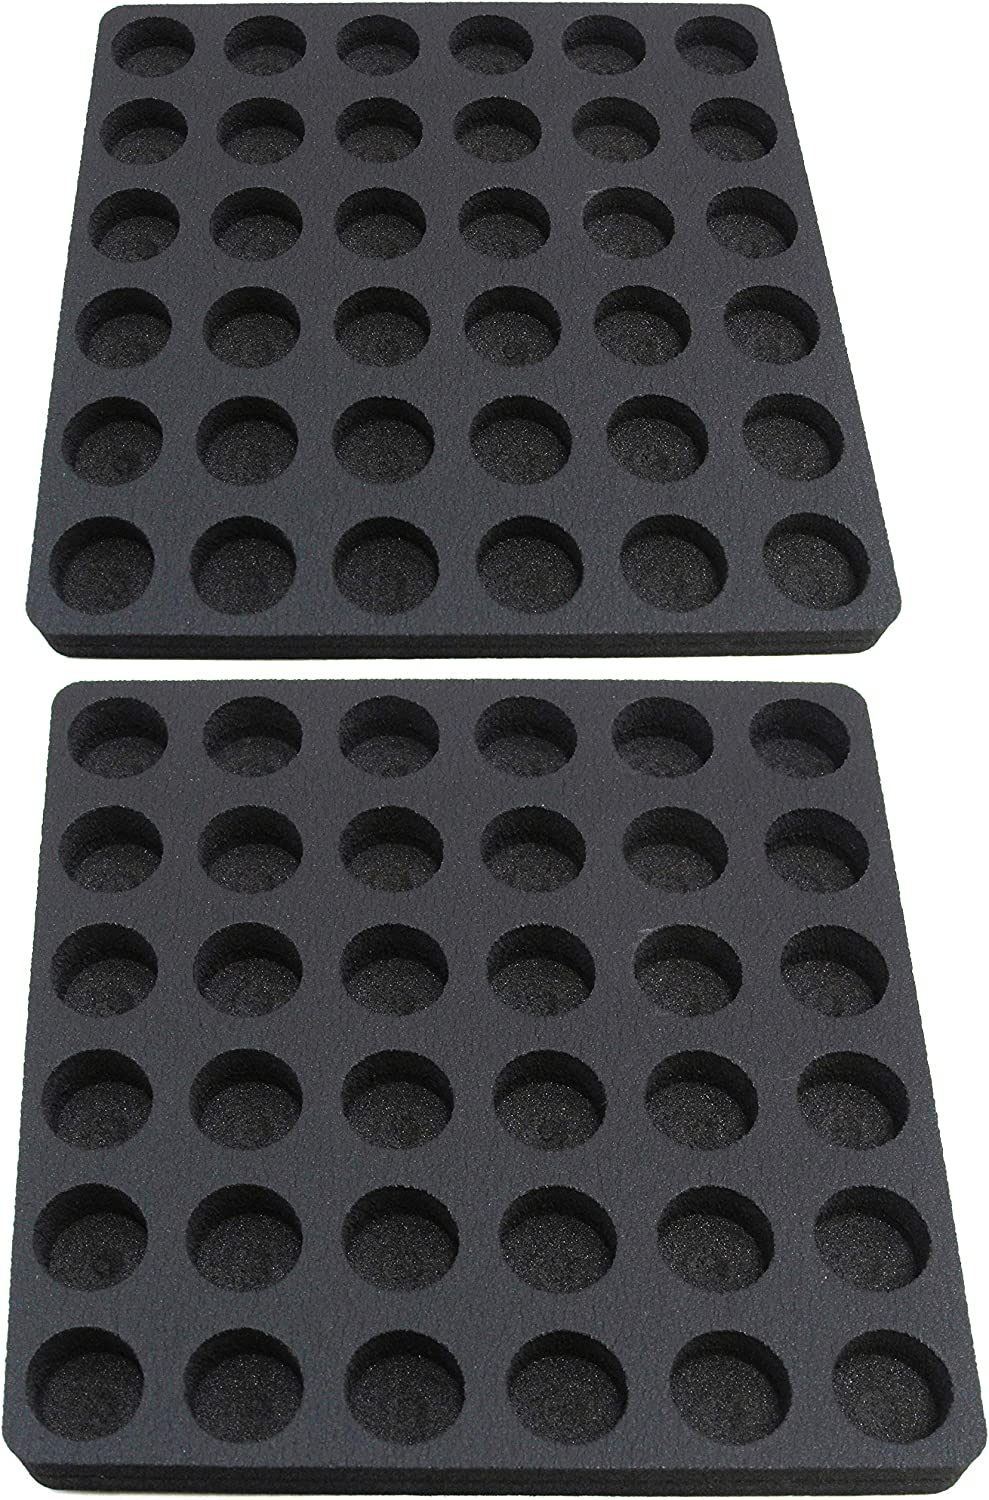 Polar Whale 2 Coffee Pod Storage Organizers Slim Tray Drawer Insert for Kitchen Home Office Waterproof Washable 12.5 X 12.5 Inches Holds 36 Each (72 Total) Compatible with Keurig K-Cup